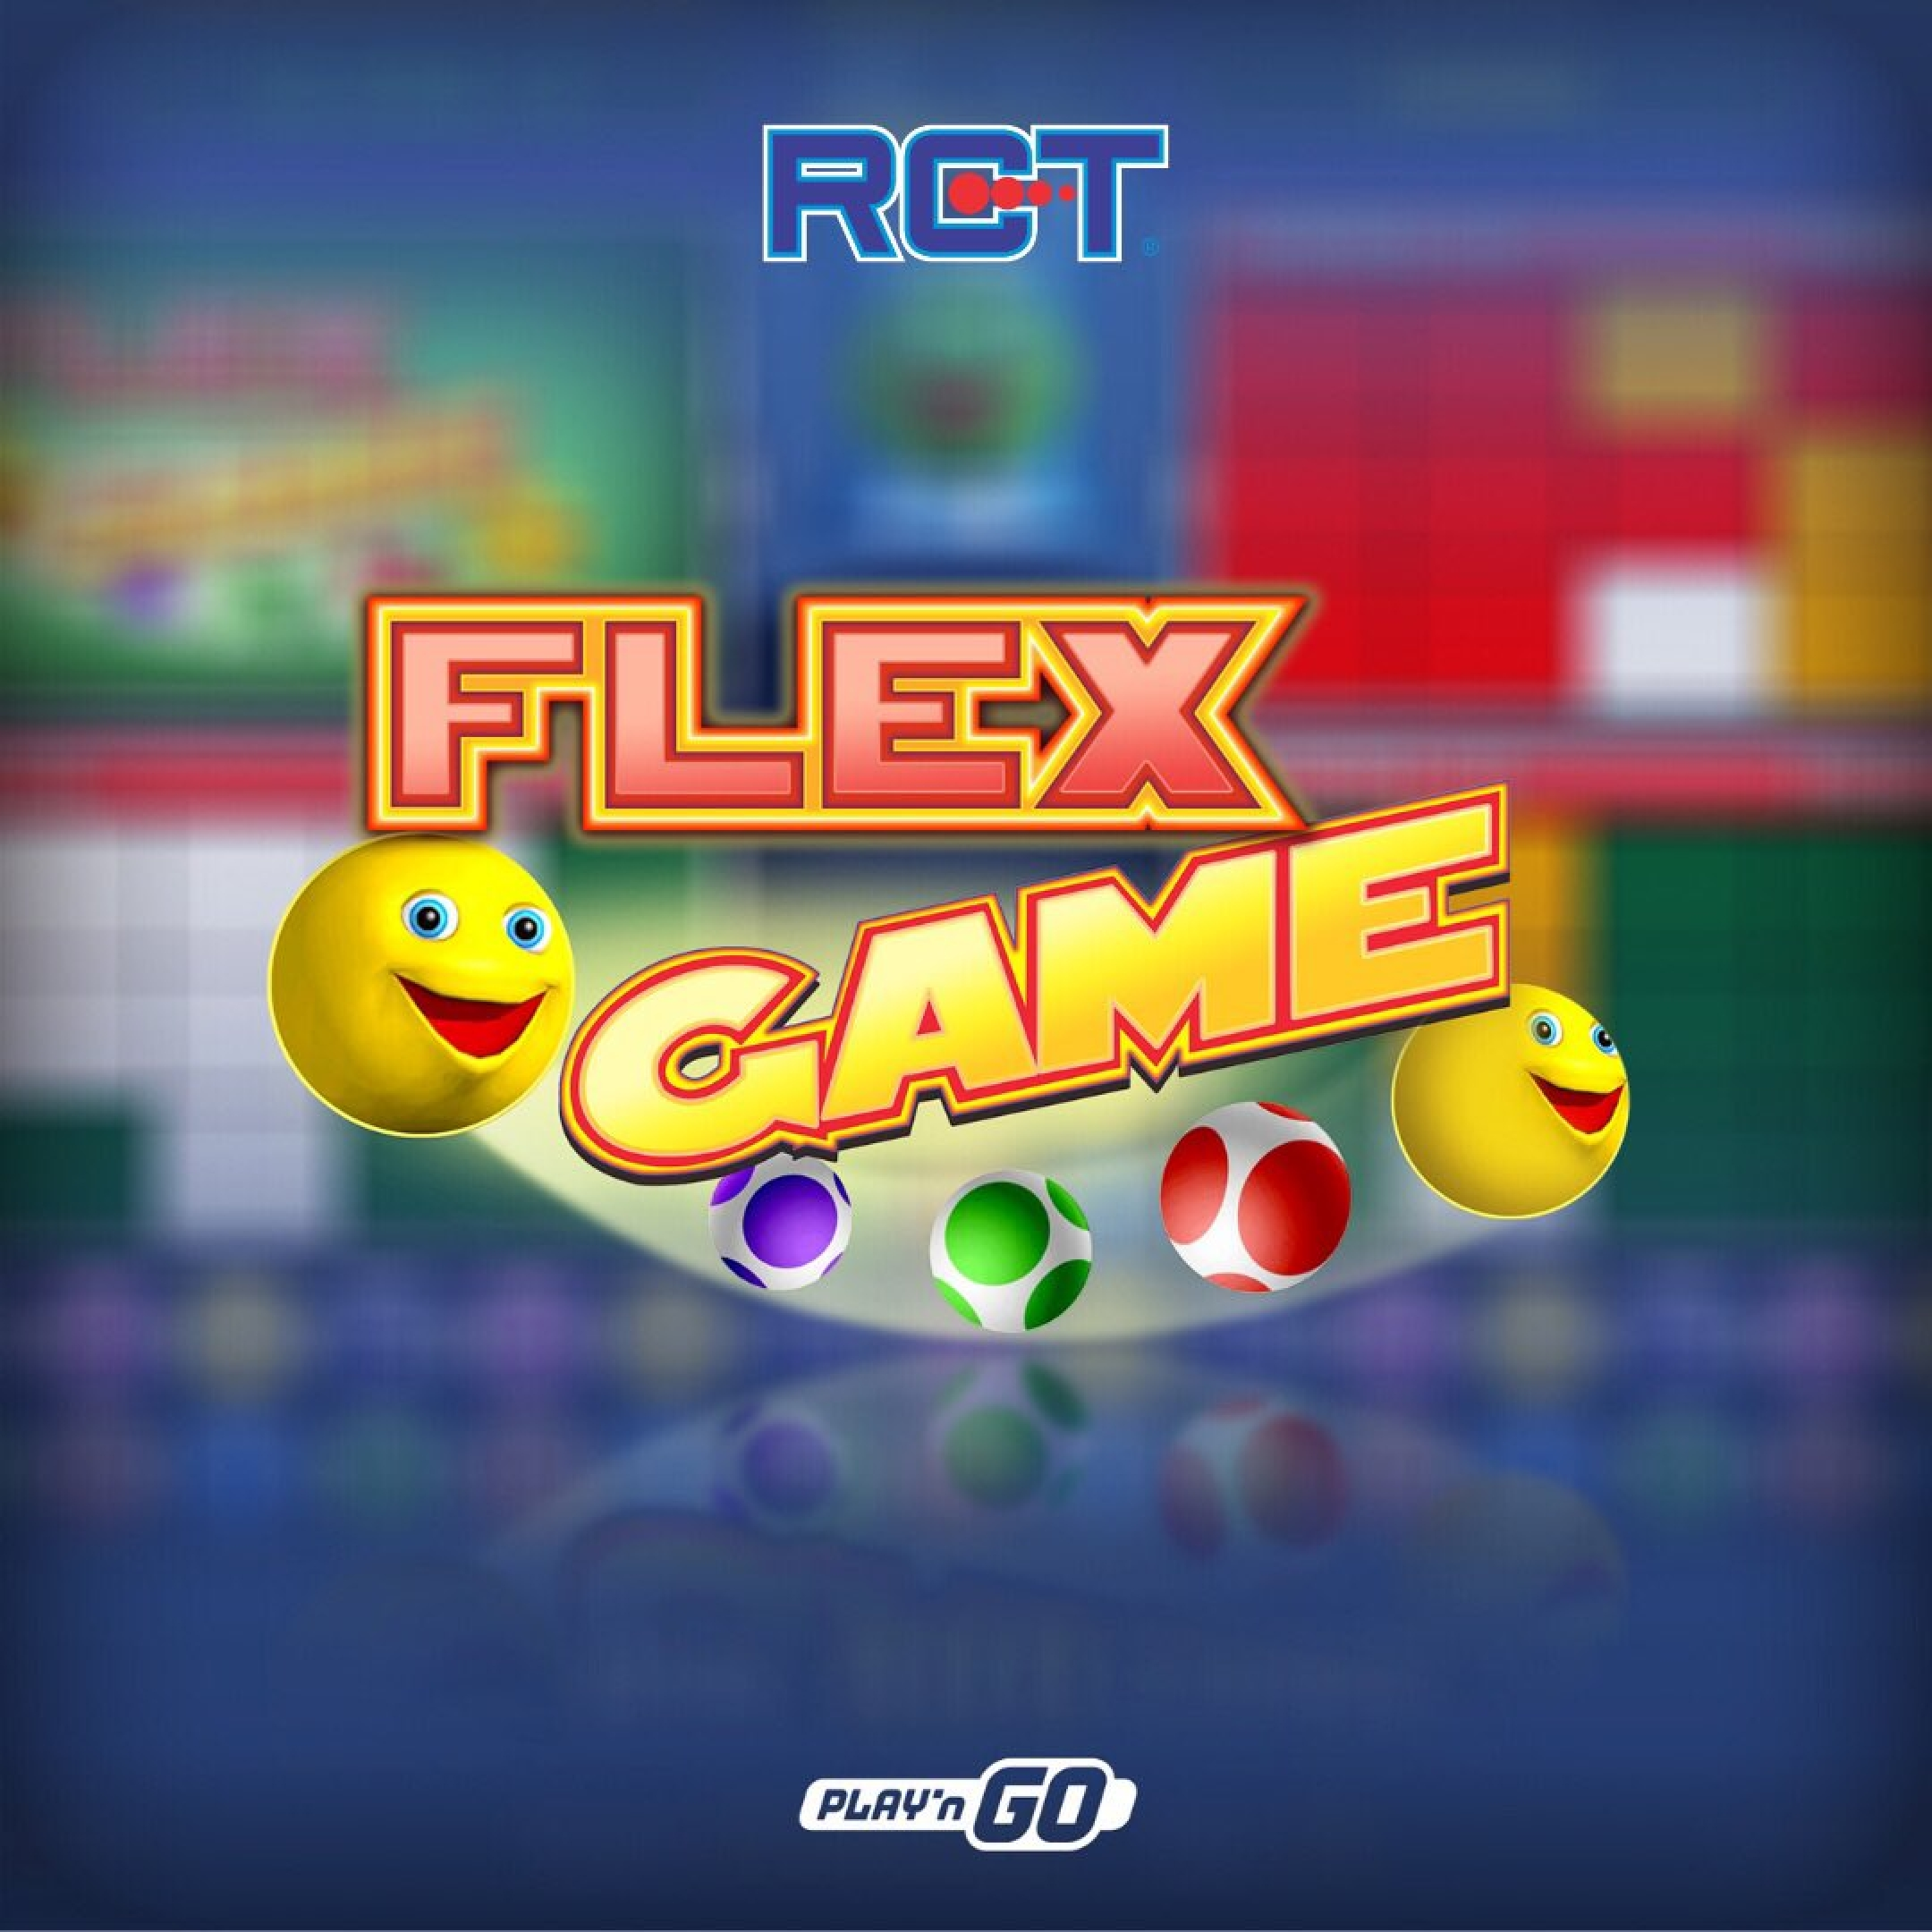 The Flex Game Online Slot Demo Game by Playn GO